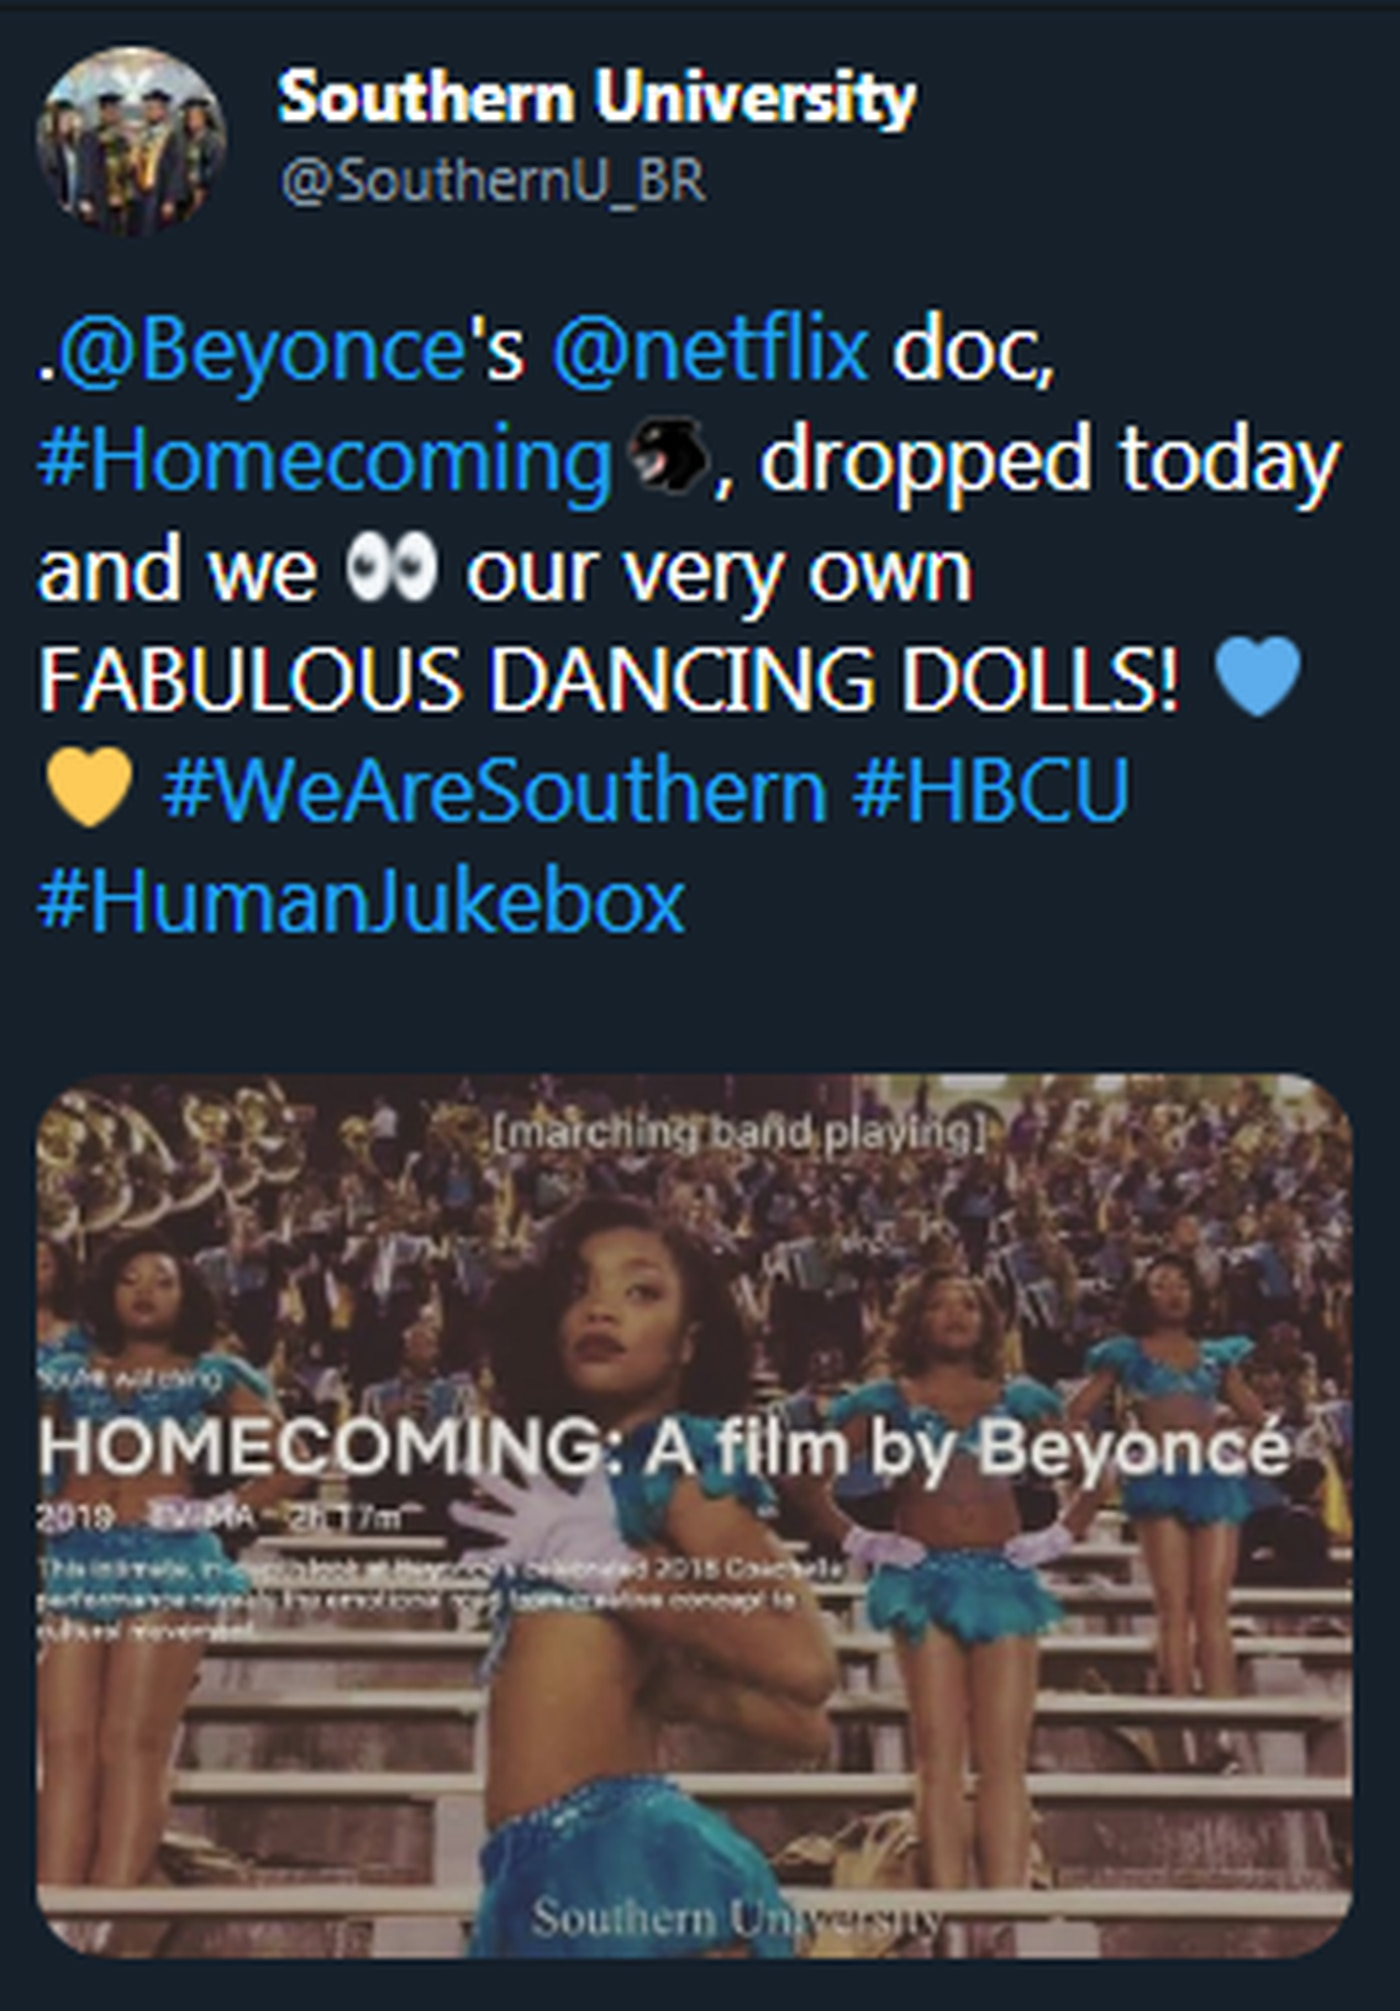 Southern University featured in Beyoncé' Netflix documentary